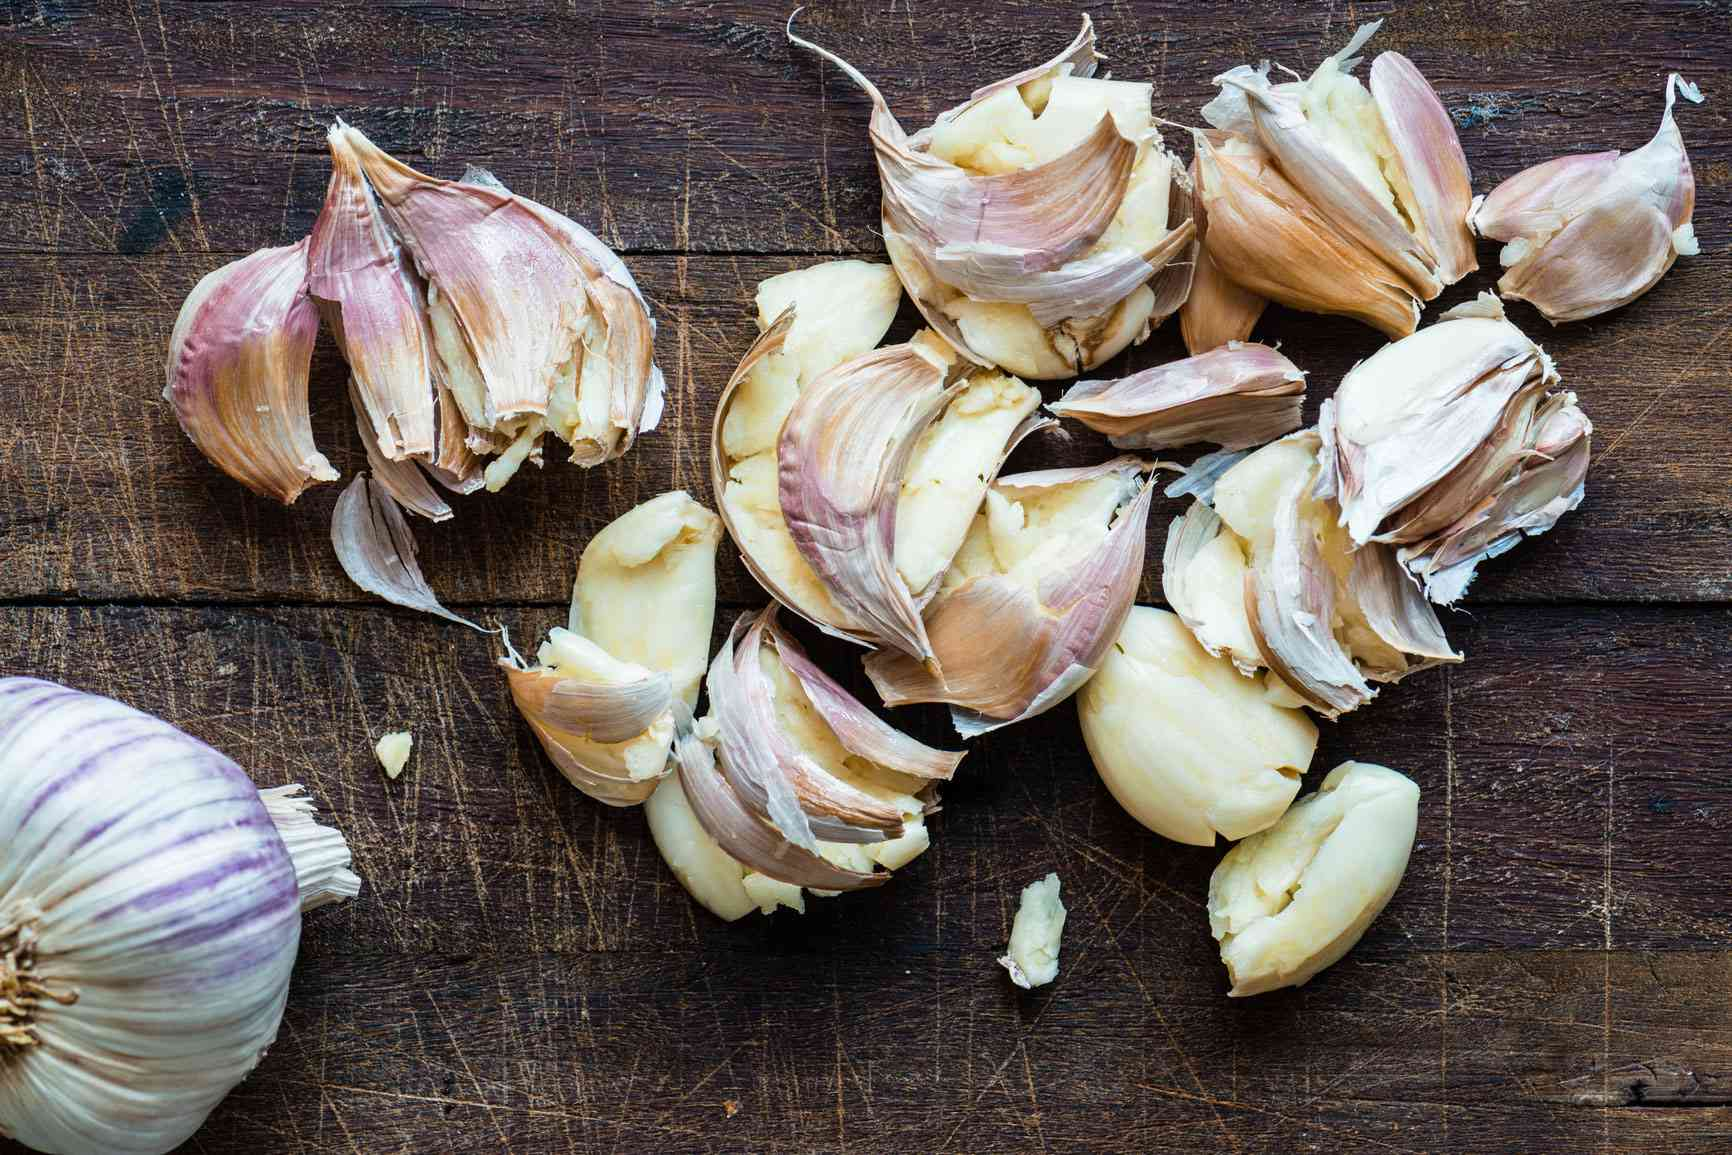 Cloves of garlic scattered on a surface